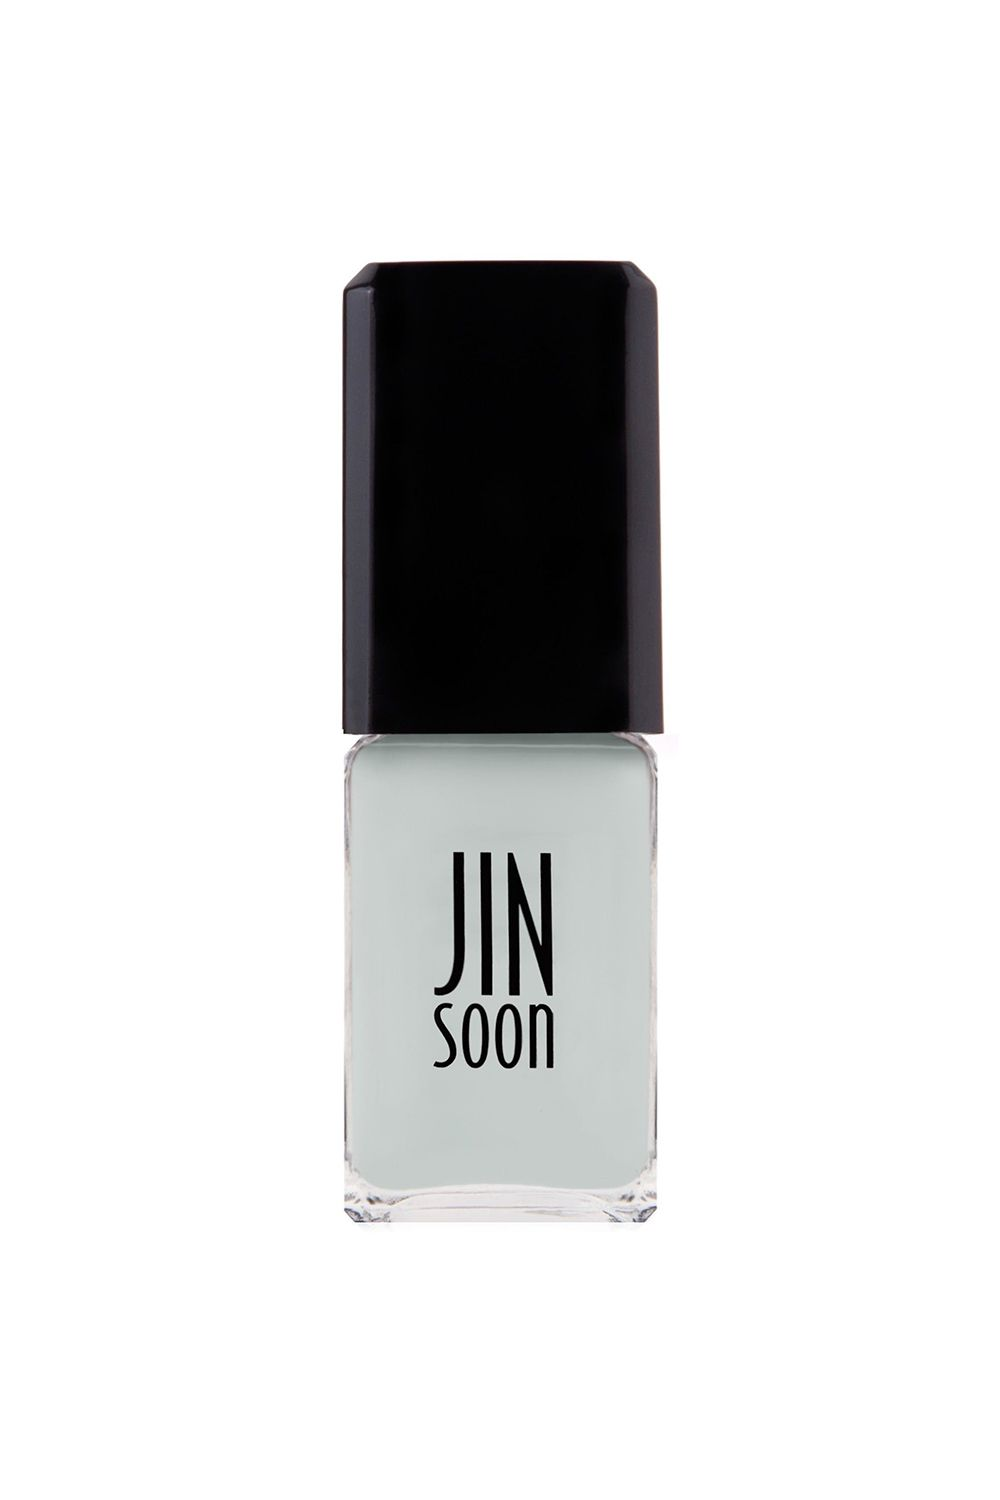 """<p>""""In the '90s, all the cool girls wore good old Wite-Out as """"nail polish."""" I still have a tender spot in my heart for that look, so I like this JINsoon polish plus a coat of their Matte Maker. Fashion: but make it an office product.<span class=""""redactor-invisible-space"""" data-verified=""""redactor"""" data-redactor-tag=""""span"""" data-redactor-class=""""redactor-invisible-space"""">"""" —<span class=""""redactor-invisible-space"""" data-verified=""""redactor"""" data-redactor-tag=""""span"""" data-redactor-class=""""redactor-invisible-space""""></span>&nbsp&#x3B;Estelle Tang, ELLE.com Culture Editor&nbsp&#x3B;</span></p><p><span class=""""redactor-invisible-space"""" data-verified=""""redactor"""" data-redactor-tag=""""span"""" data-redactor-class=""""redactor-invisible-space""""><em data-redactor-tag=""""em"""" data-verified=""""redactor"""">JINsoon Nail Polish in Kookie White, $18&#x3B; <a href=""""http://jinsoon.com/kookie-white/"""" data-tracking-id=""""recirc-text-link"""">jinsoon.com</a></em></span></p><p><em data-redactor-tag=""""em"""" data-verified=""""redactor""""><span class=""""redactor-invisible-space"""" data-verified=""""redactor"""" data-redactor-tag=""""span"""" data-redactor-class=""""redactor-invisible-space""""></span>JINsoon Matte Maker</em><span class=""""redactor-invisible-space"""" data-verified=""""redactor"""" data-redactor-tag=""""span"""" data-redactor-class=""""redactor-invisible-space""""><em data-redactor-tag=""""em"""" data-verified=""""redactor"""">, $18&#x3B; </em><a href=""""http://jinsoon.com/matte-maker-matte-top-coat/"""" data-tracking-id=""""recirc-text-link""""><em data-redactor-tag=""""em"""" data-verified=""""redactor"""">jinsoon.com</em></a></span></p>"""